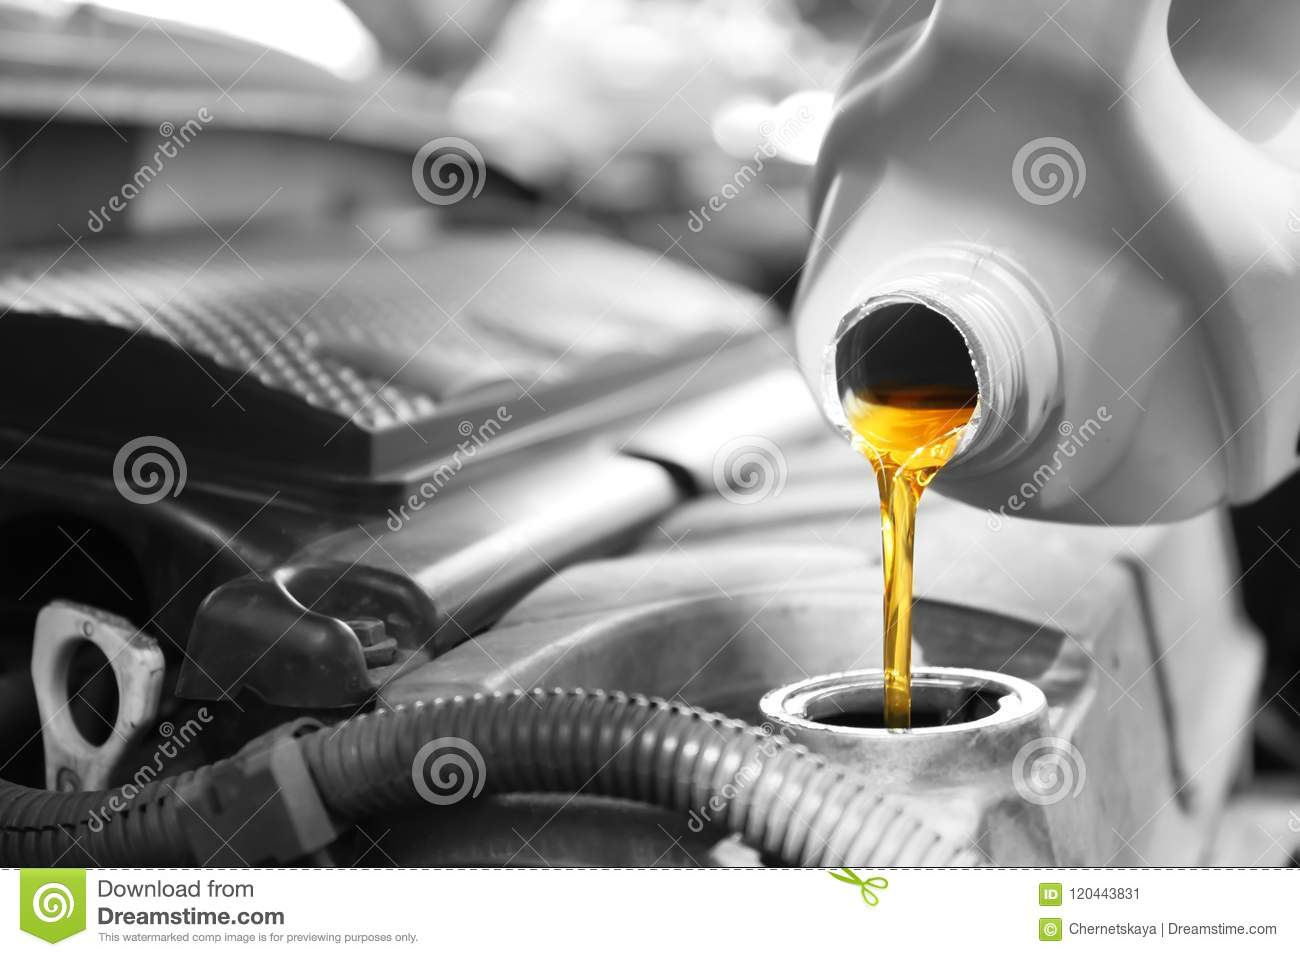 Pouring oil into car engine